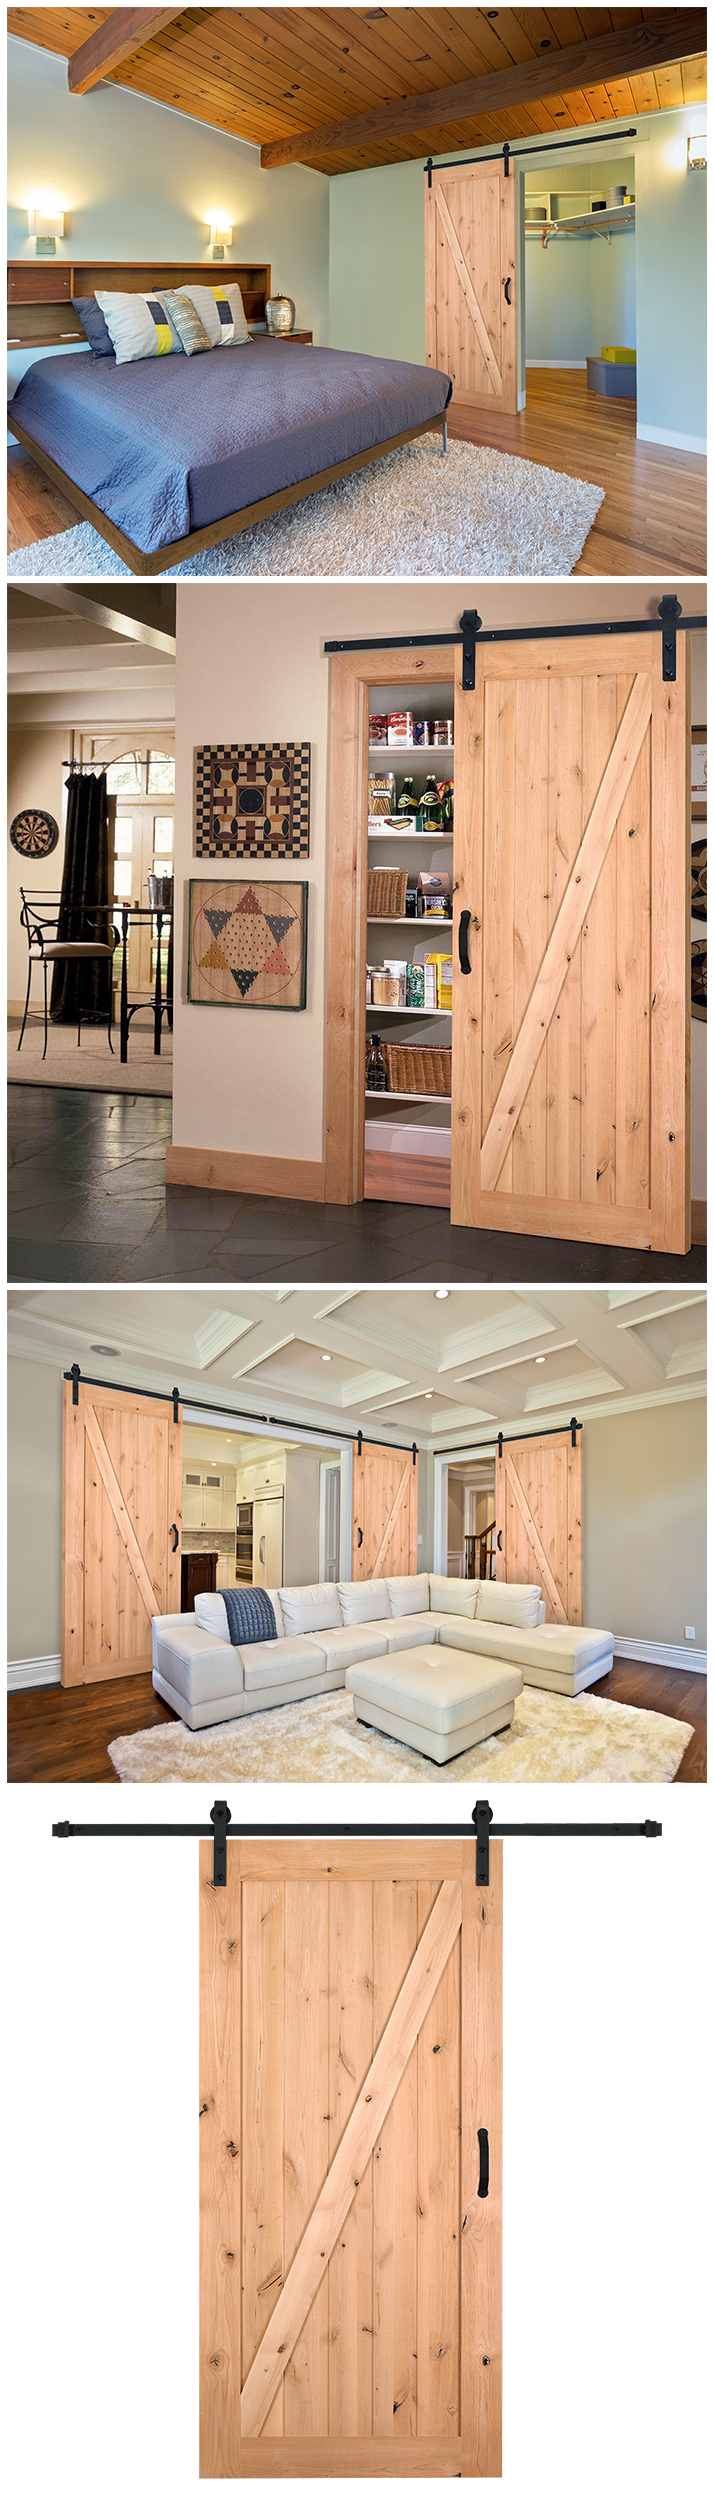 barn doors reuse 11 1